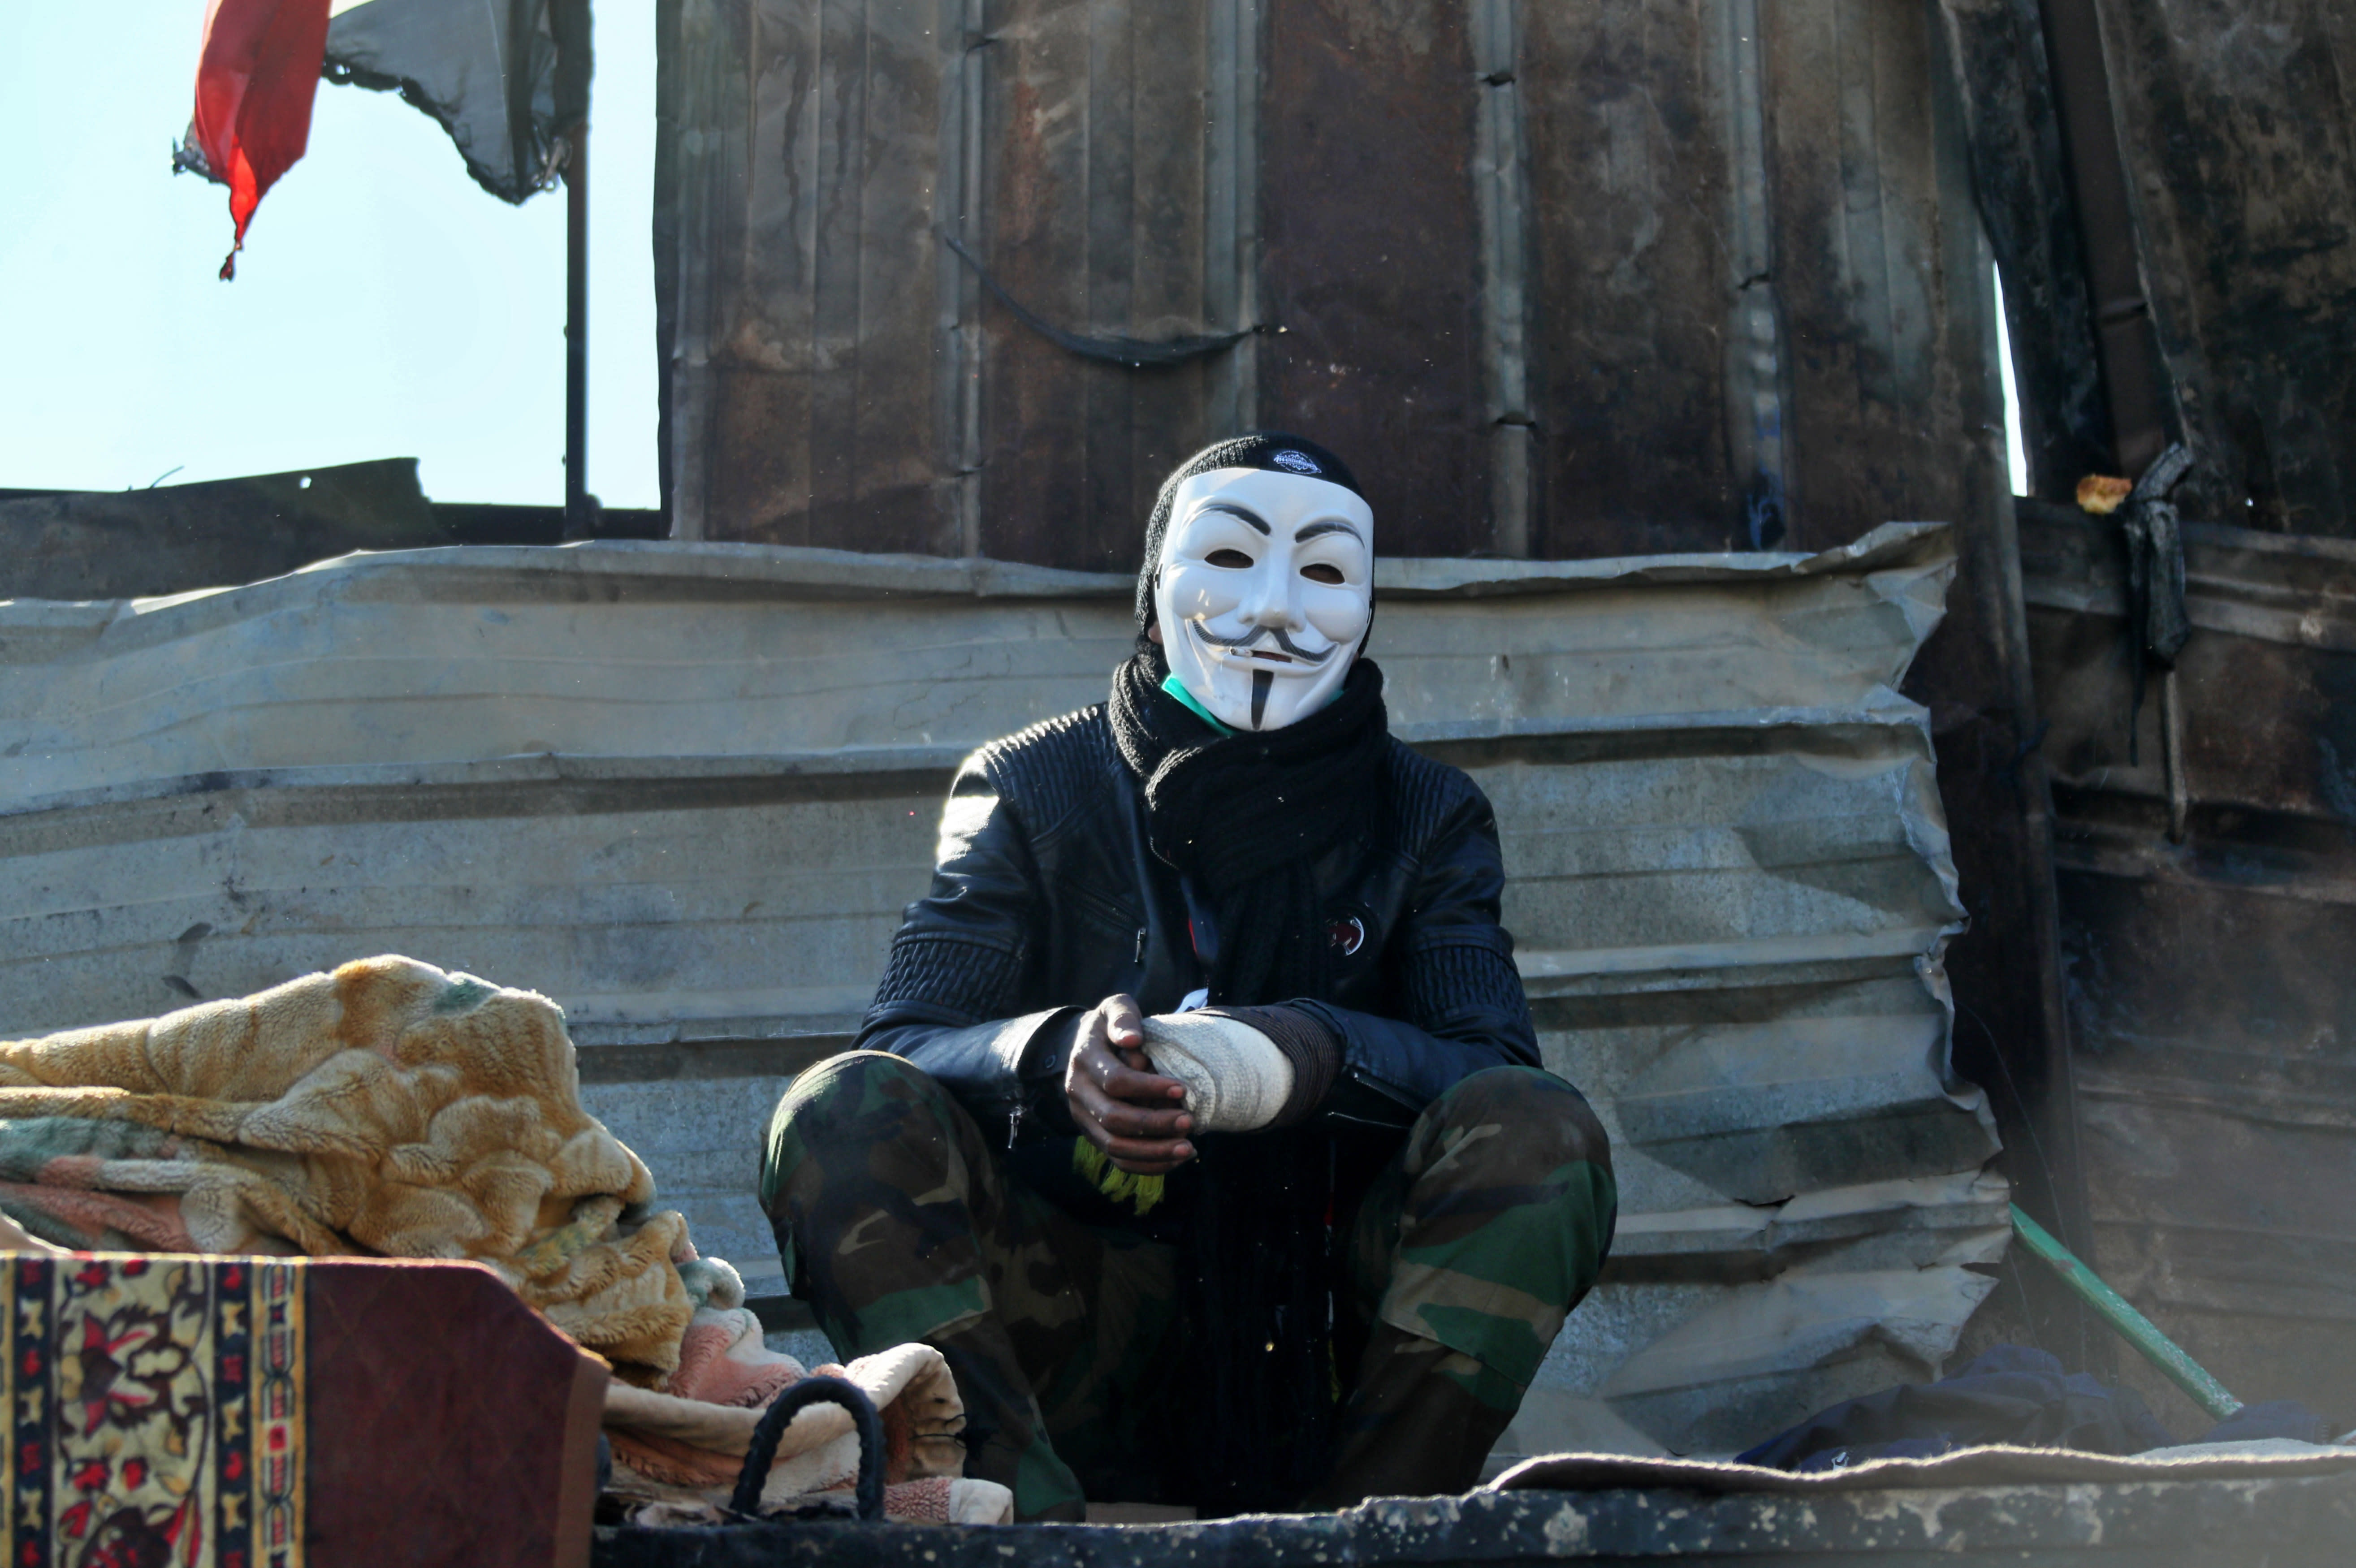 A protester wearing a Guy Fawkes mask takes part in a sit-in at the Ahrar Bridge in Baghdad, Iraq, Thursday, Nov. 21, 2019. Renewed clashes overnight in Baghdad between anti-government demonstrators and security forces killed and wounded protesters, security and hospital officials said Thursday. (AP Photo/Hadi Mizban)